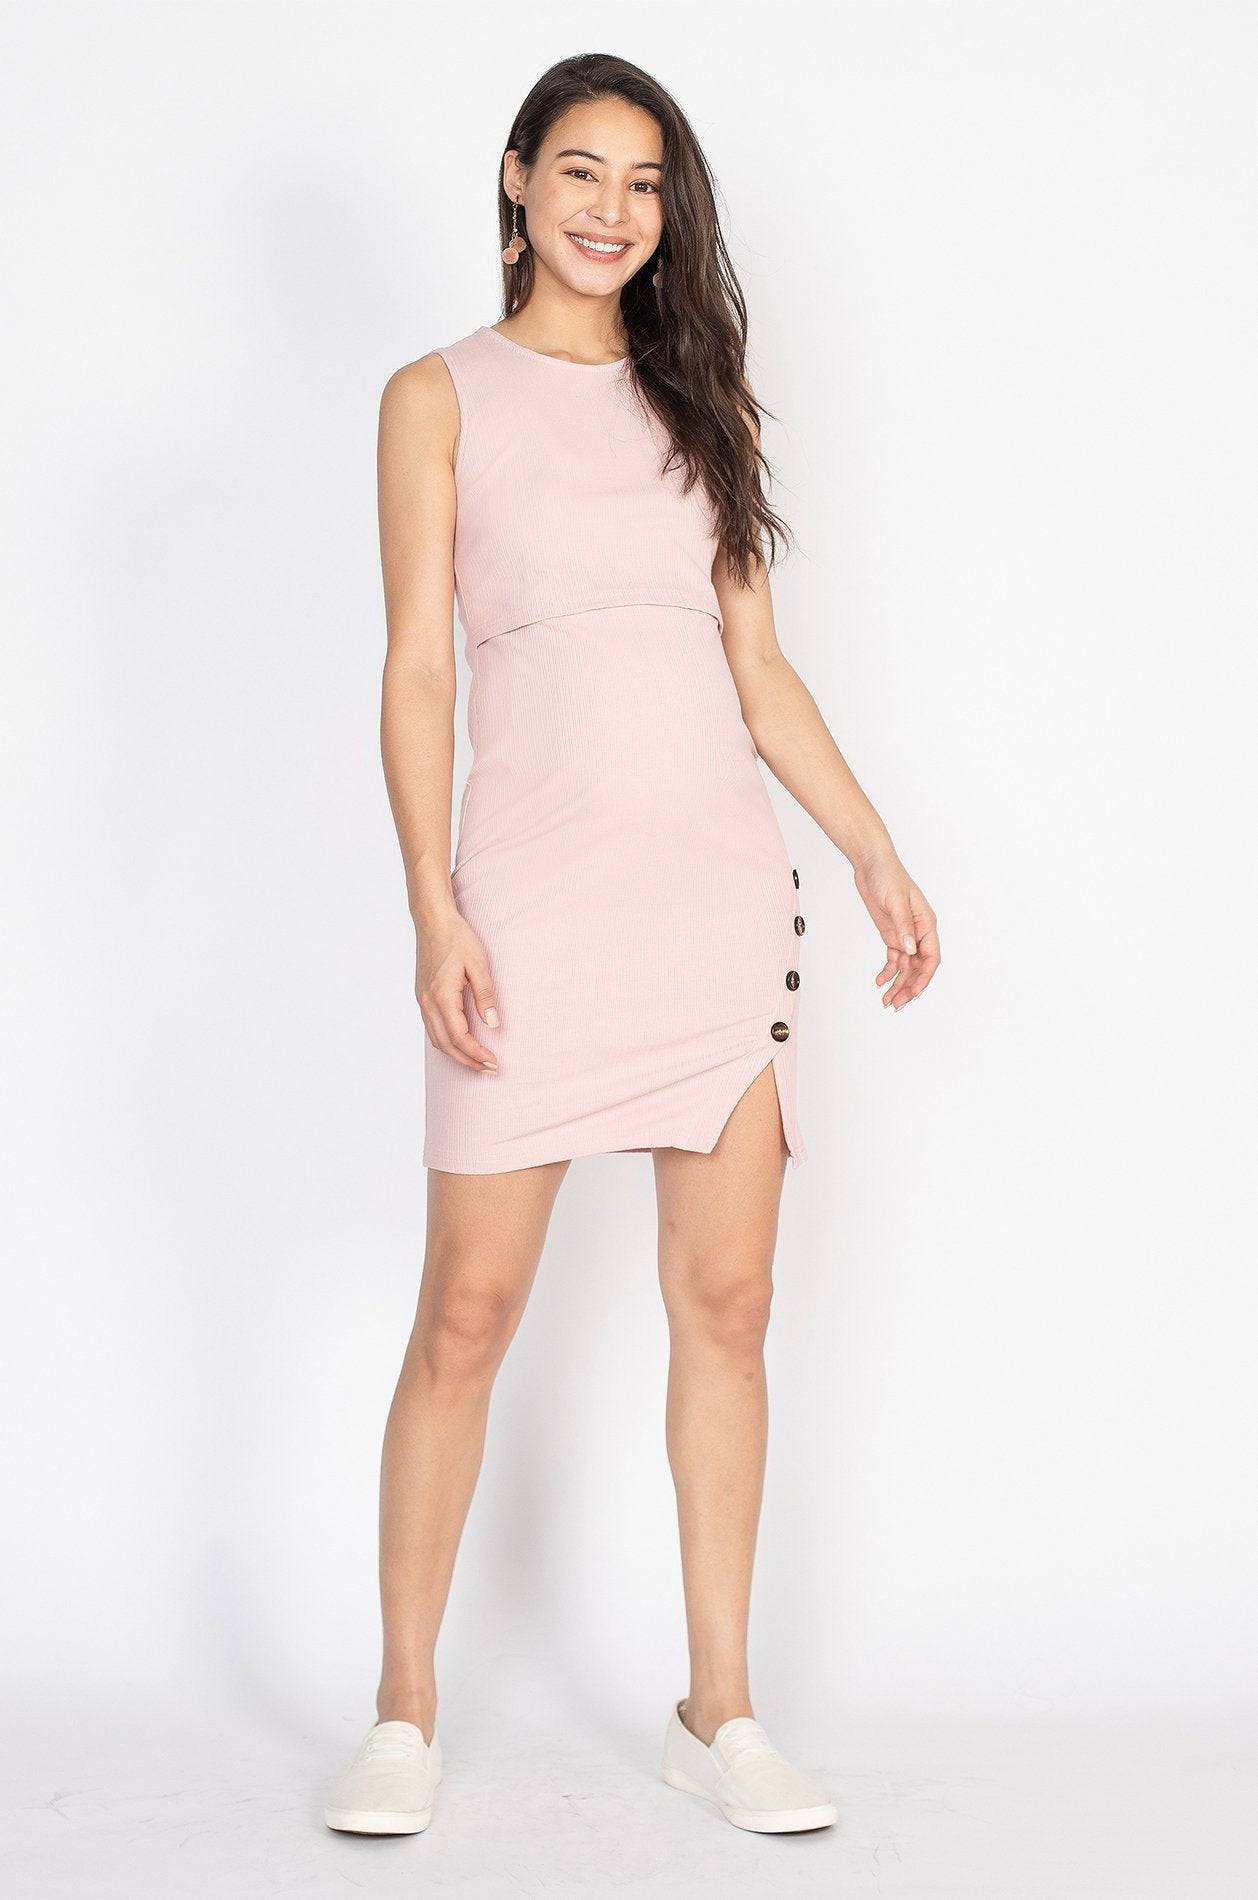 Alicia Side Button Body Con Nursing Dress in Light Pink  by Jump Eat Cry - Maternity and nursing wear